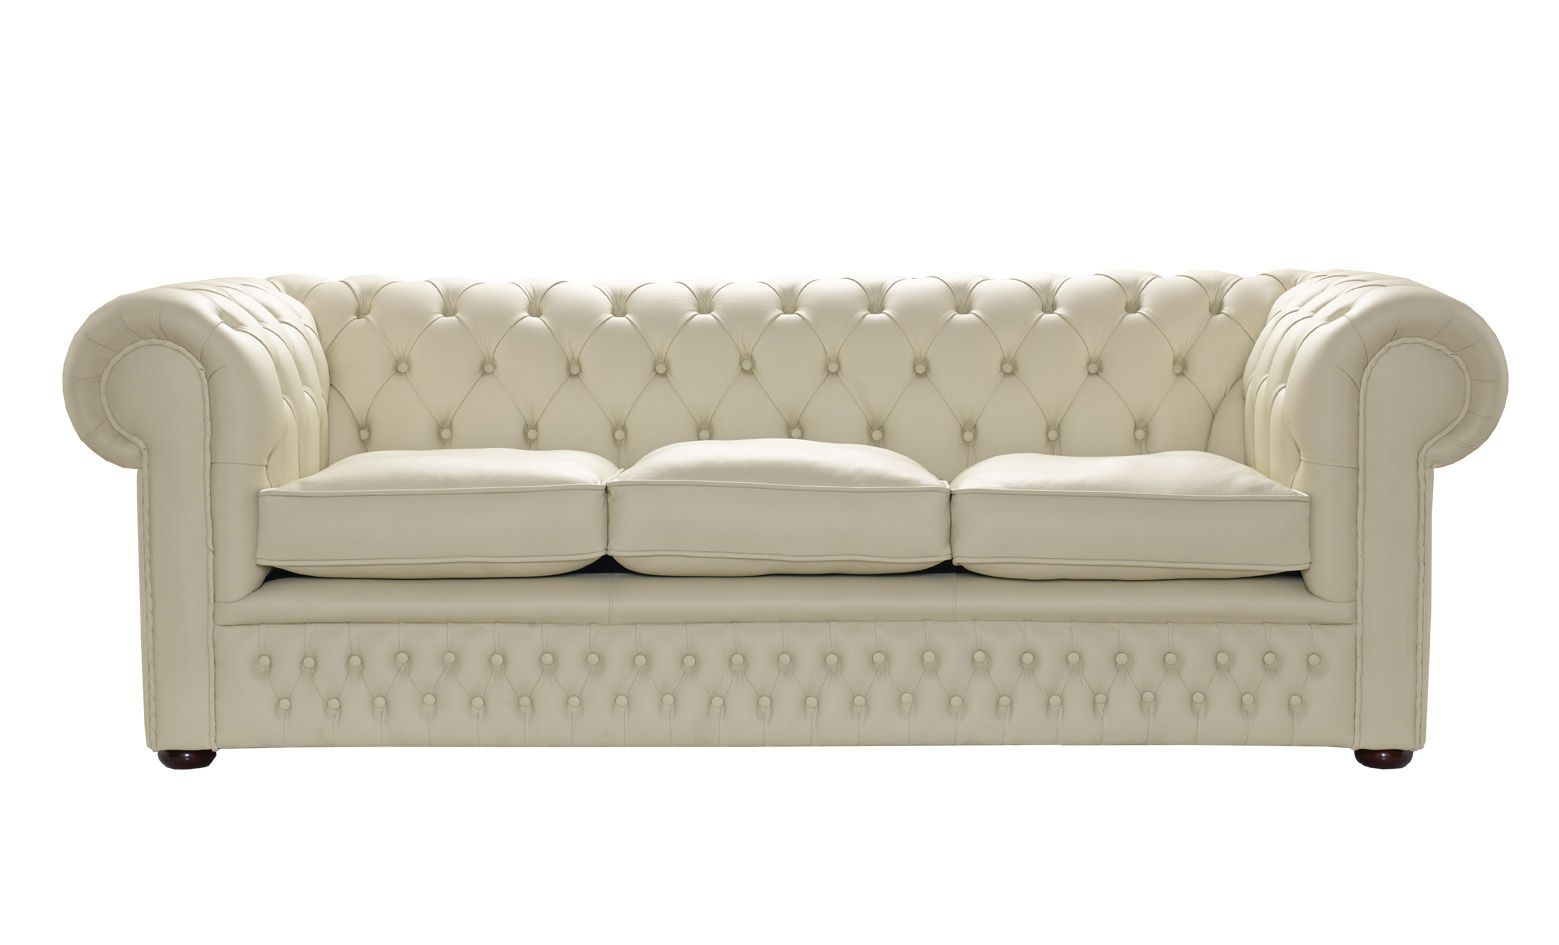 Cream Leather Sofa   In This Post We Are Going To Have Care And How To  Clean The Leather Sofas Or Light Colored Leather. Dismantle Some Myths  About Product